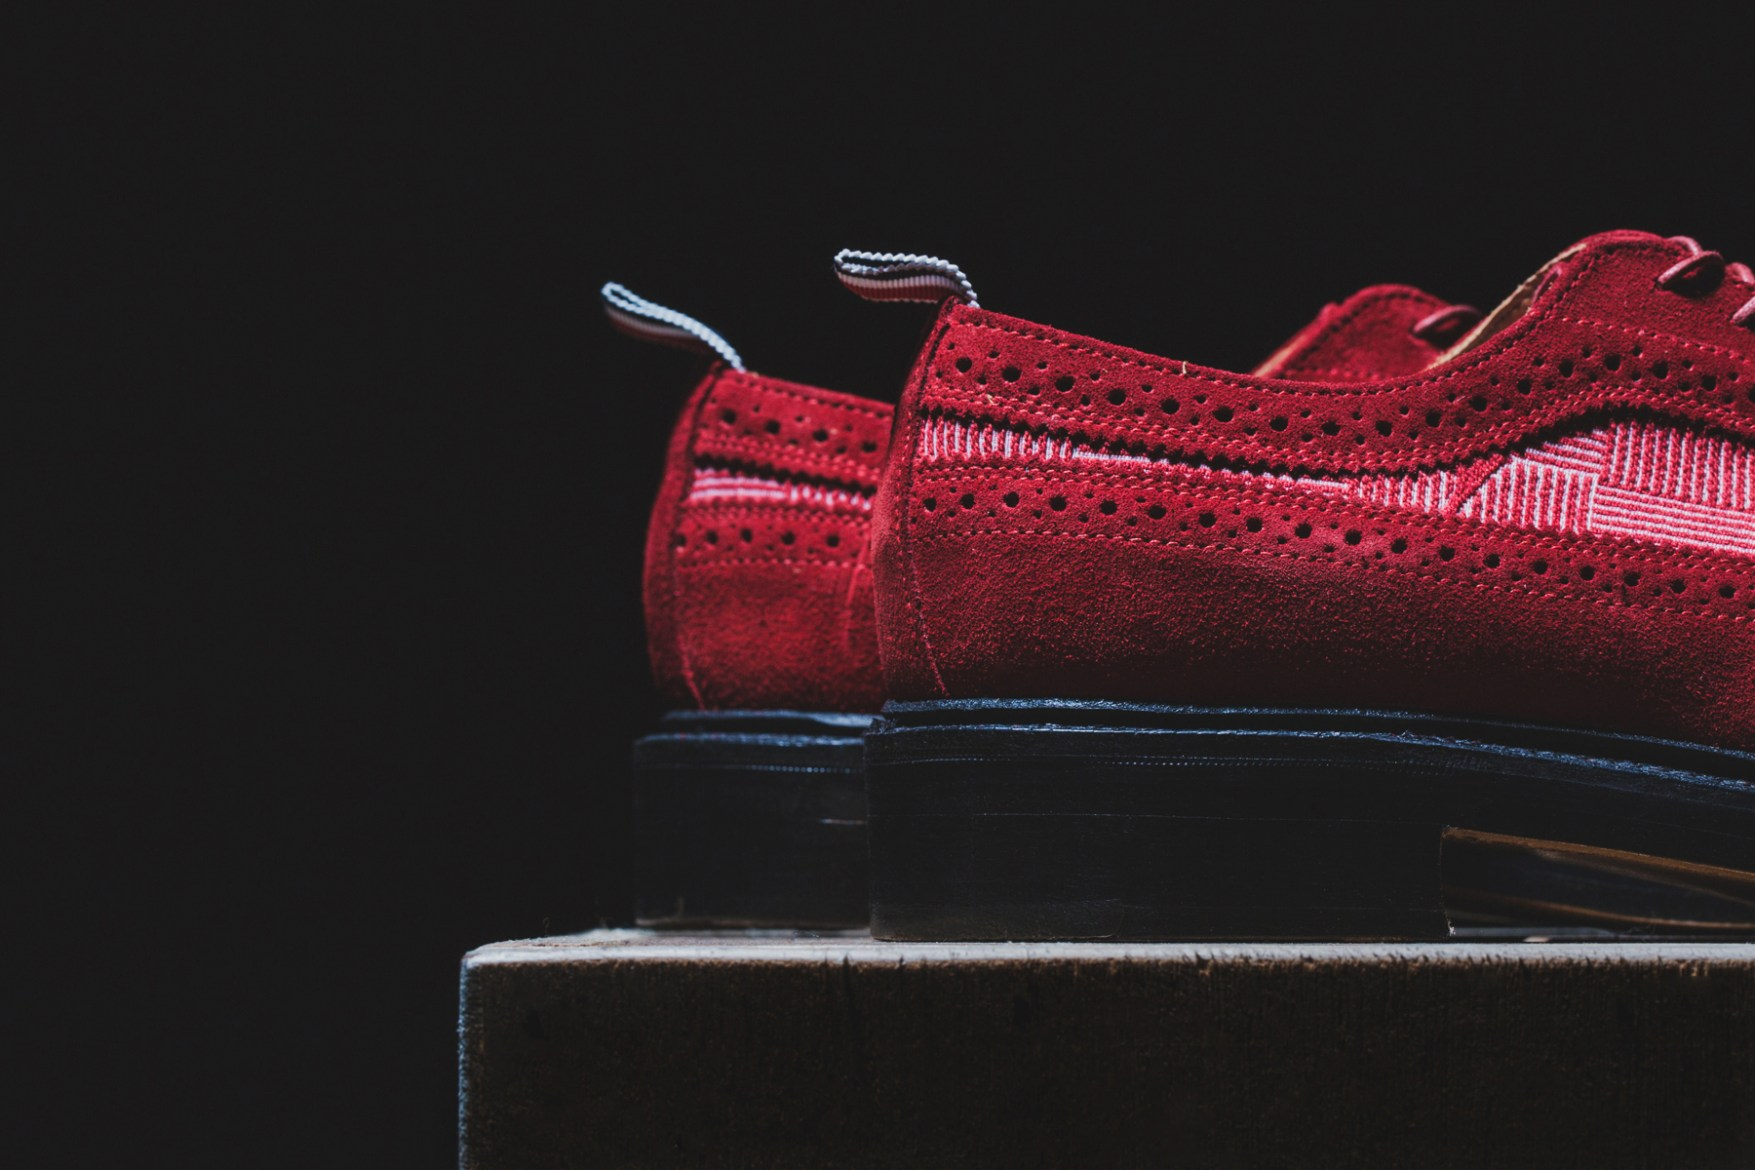 Thom Browne Long Wing Shoe Red Suede and Red Anchor Cotton Stamp Jacqaurd